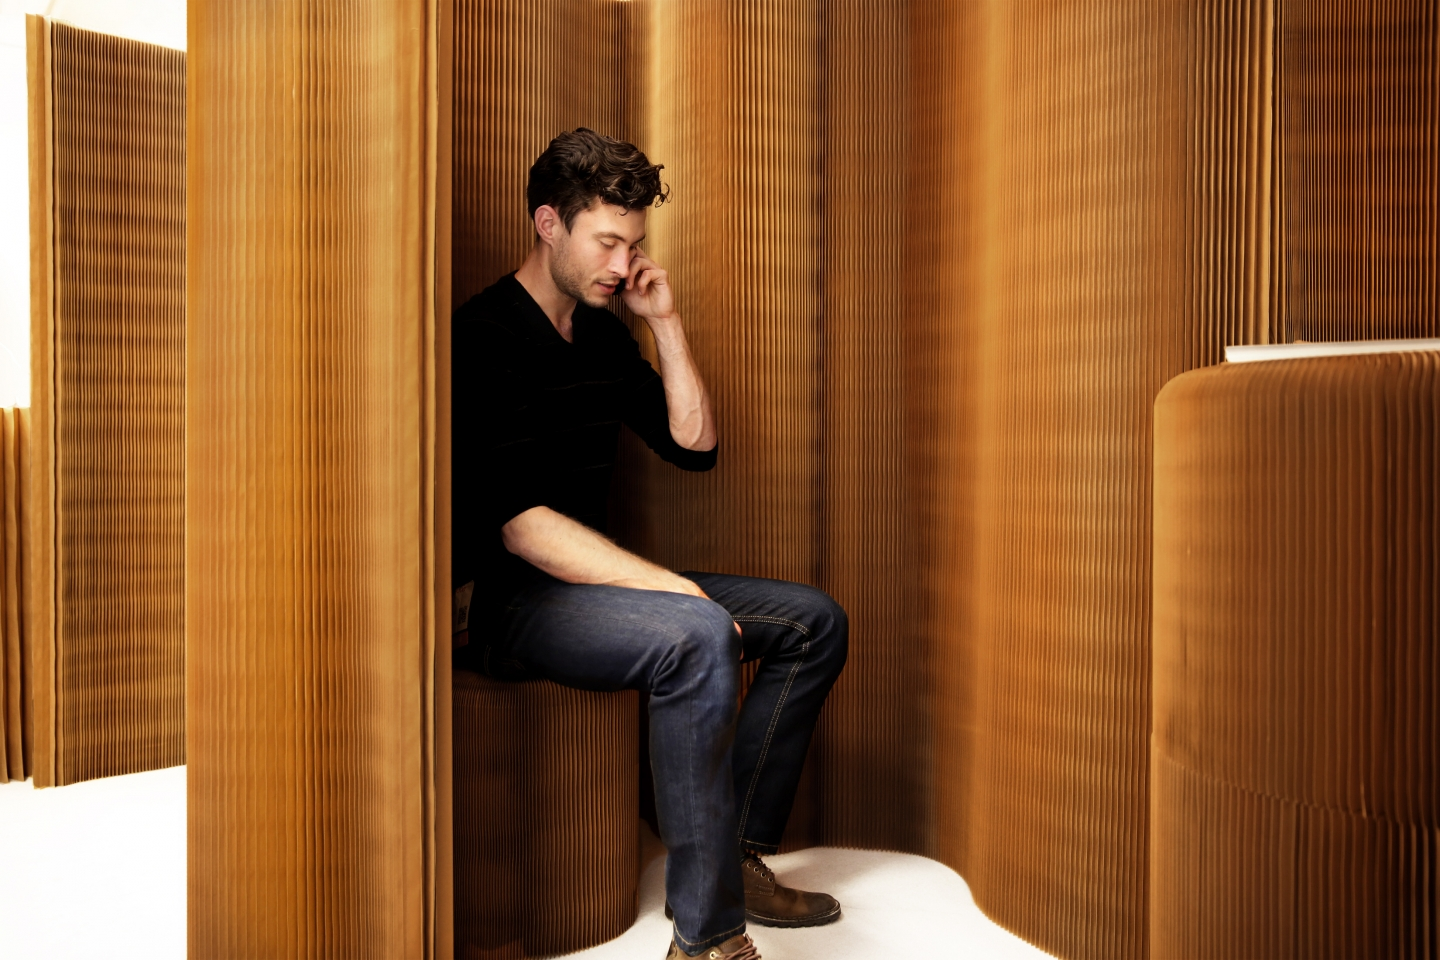 a man uses a thinwall nook to have a private phone call